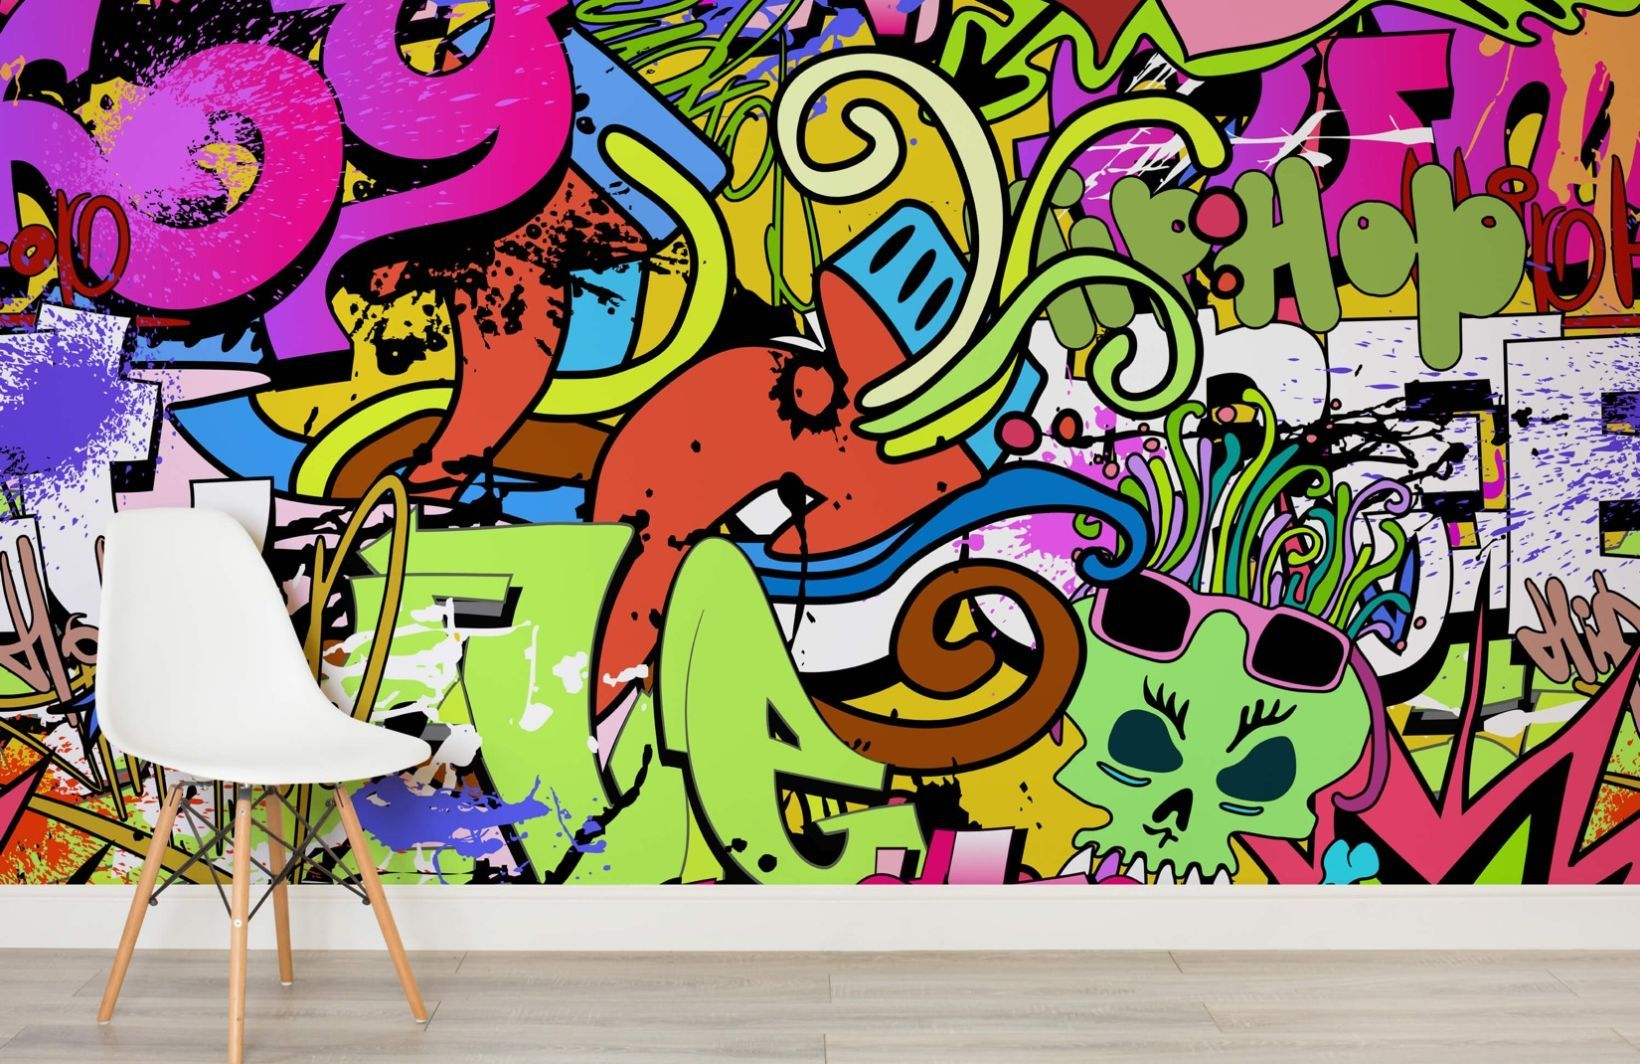 Funky Wall Art Mural Graffiti wallpaper, Graffiti wall